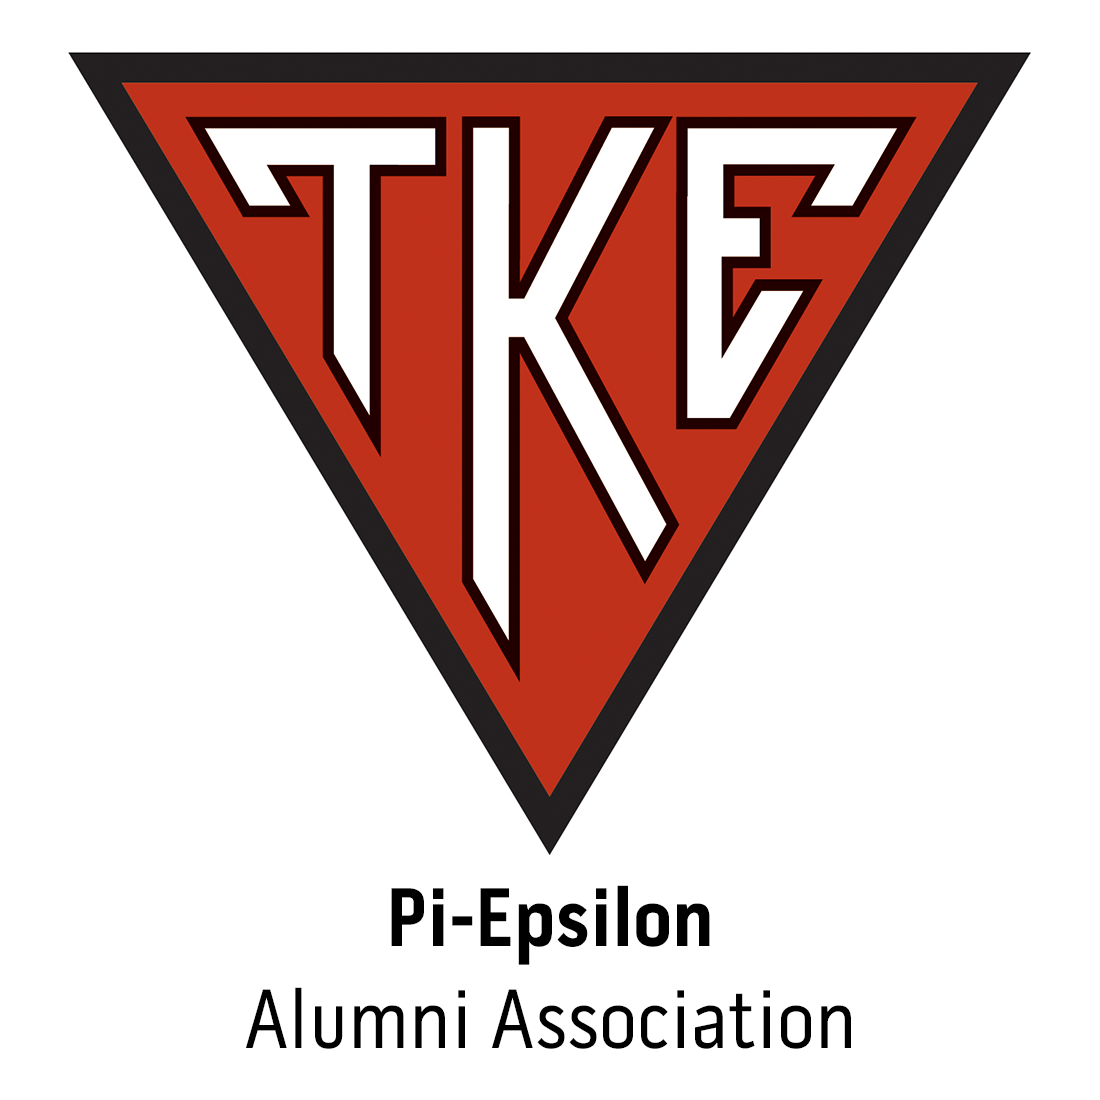 Pi-Epsilon Alumni Association Alumni at Christian Brothers University